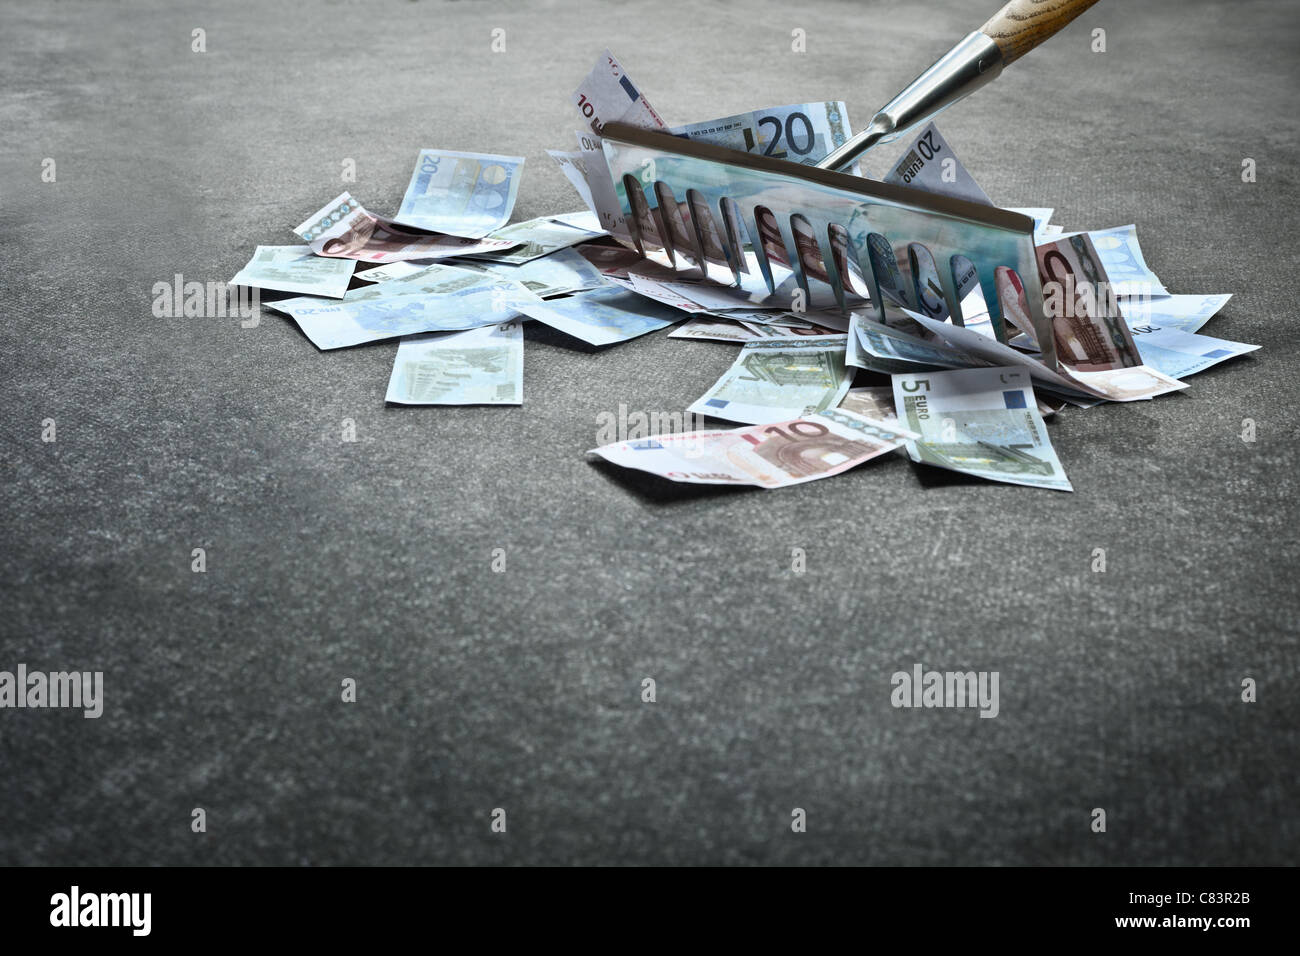 Rake collecting Euro notes - Stock Image